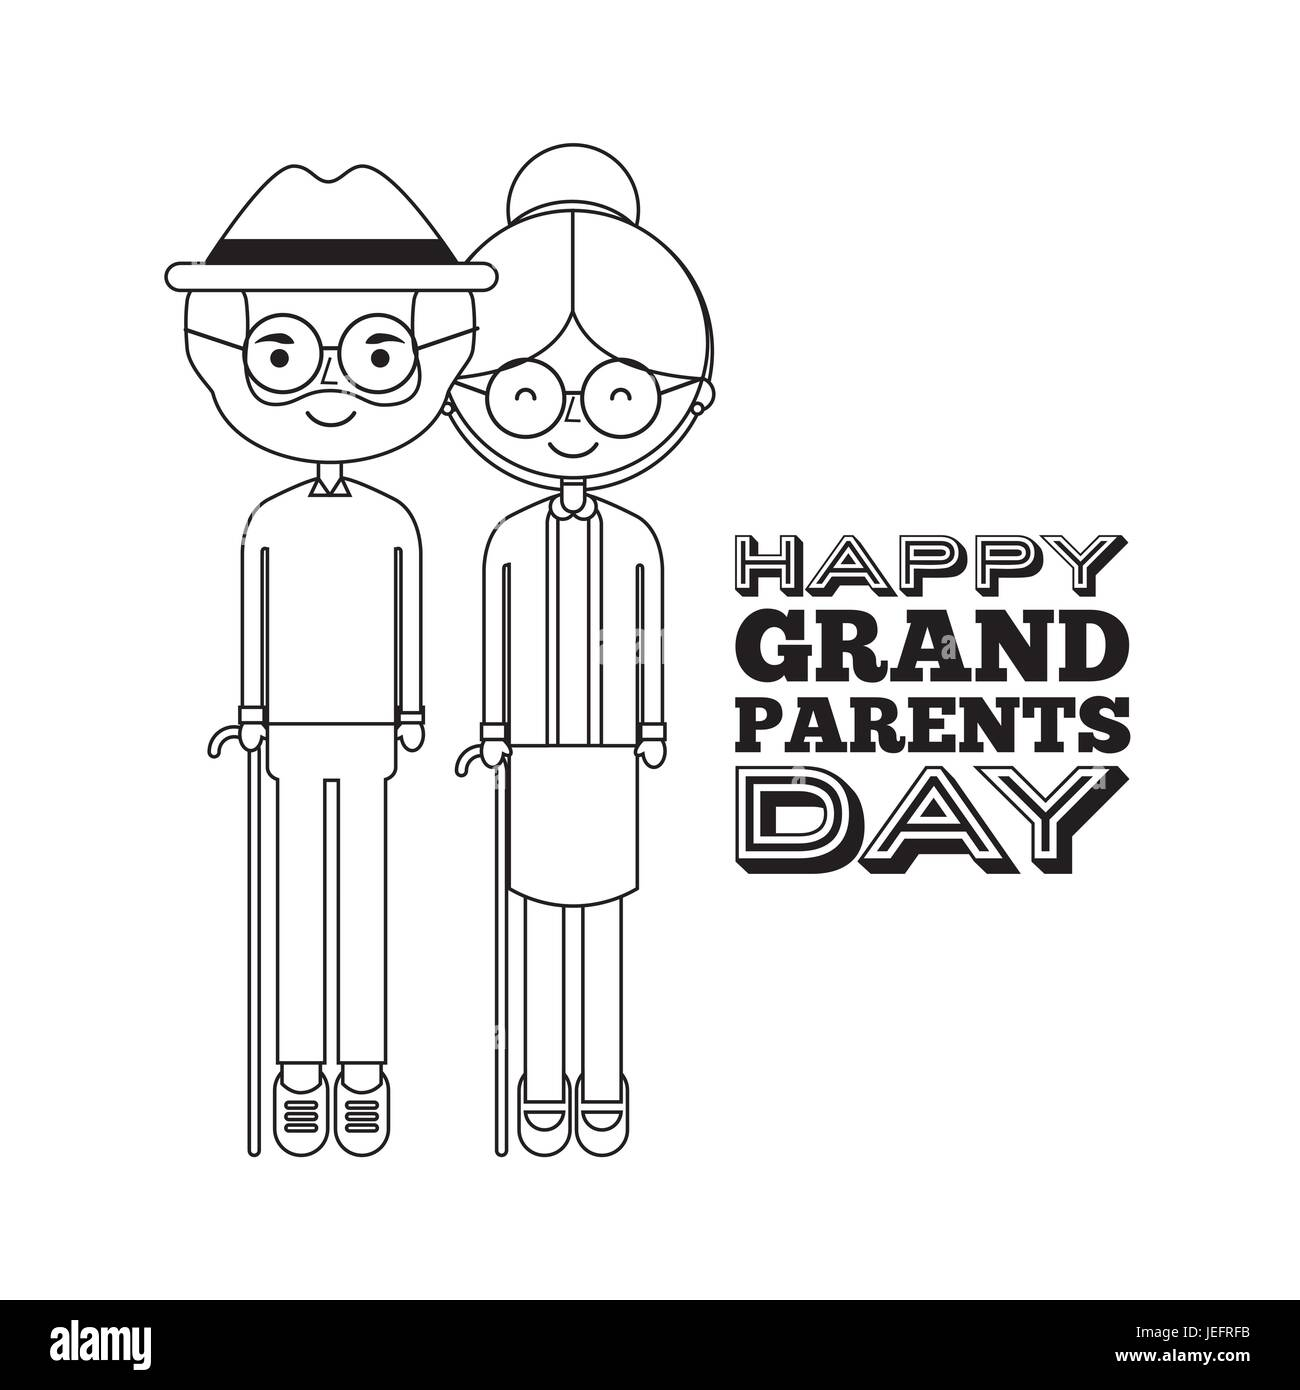 Happy grandparents day - Stock Image